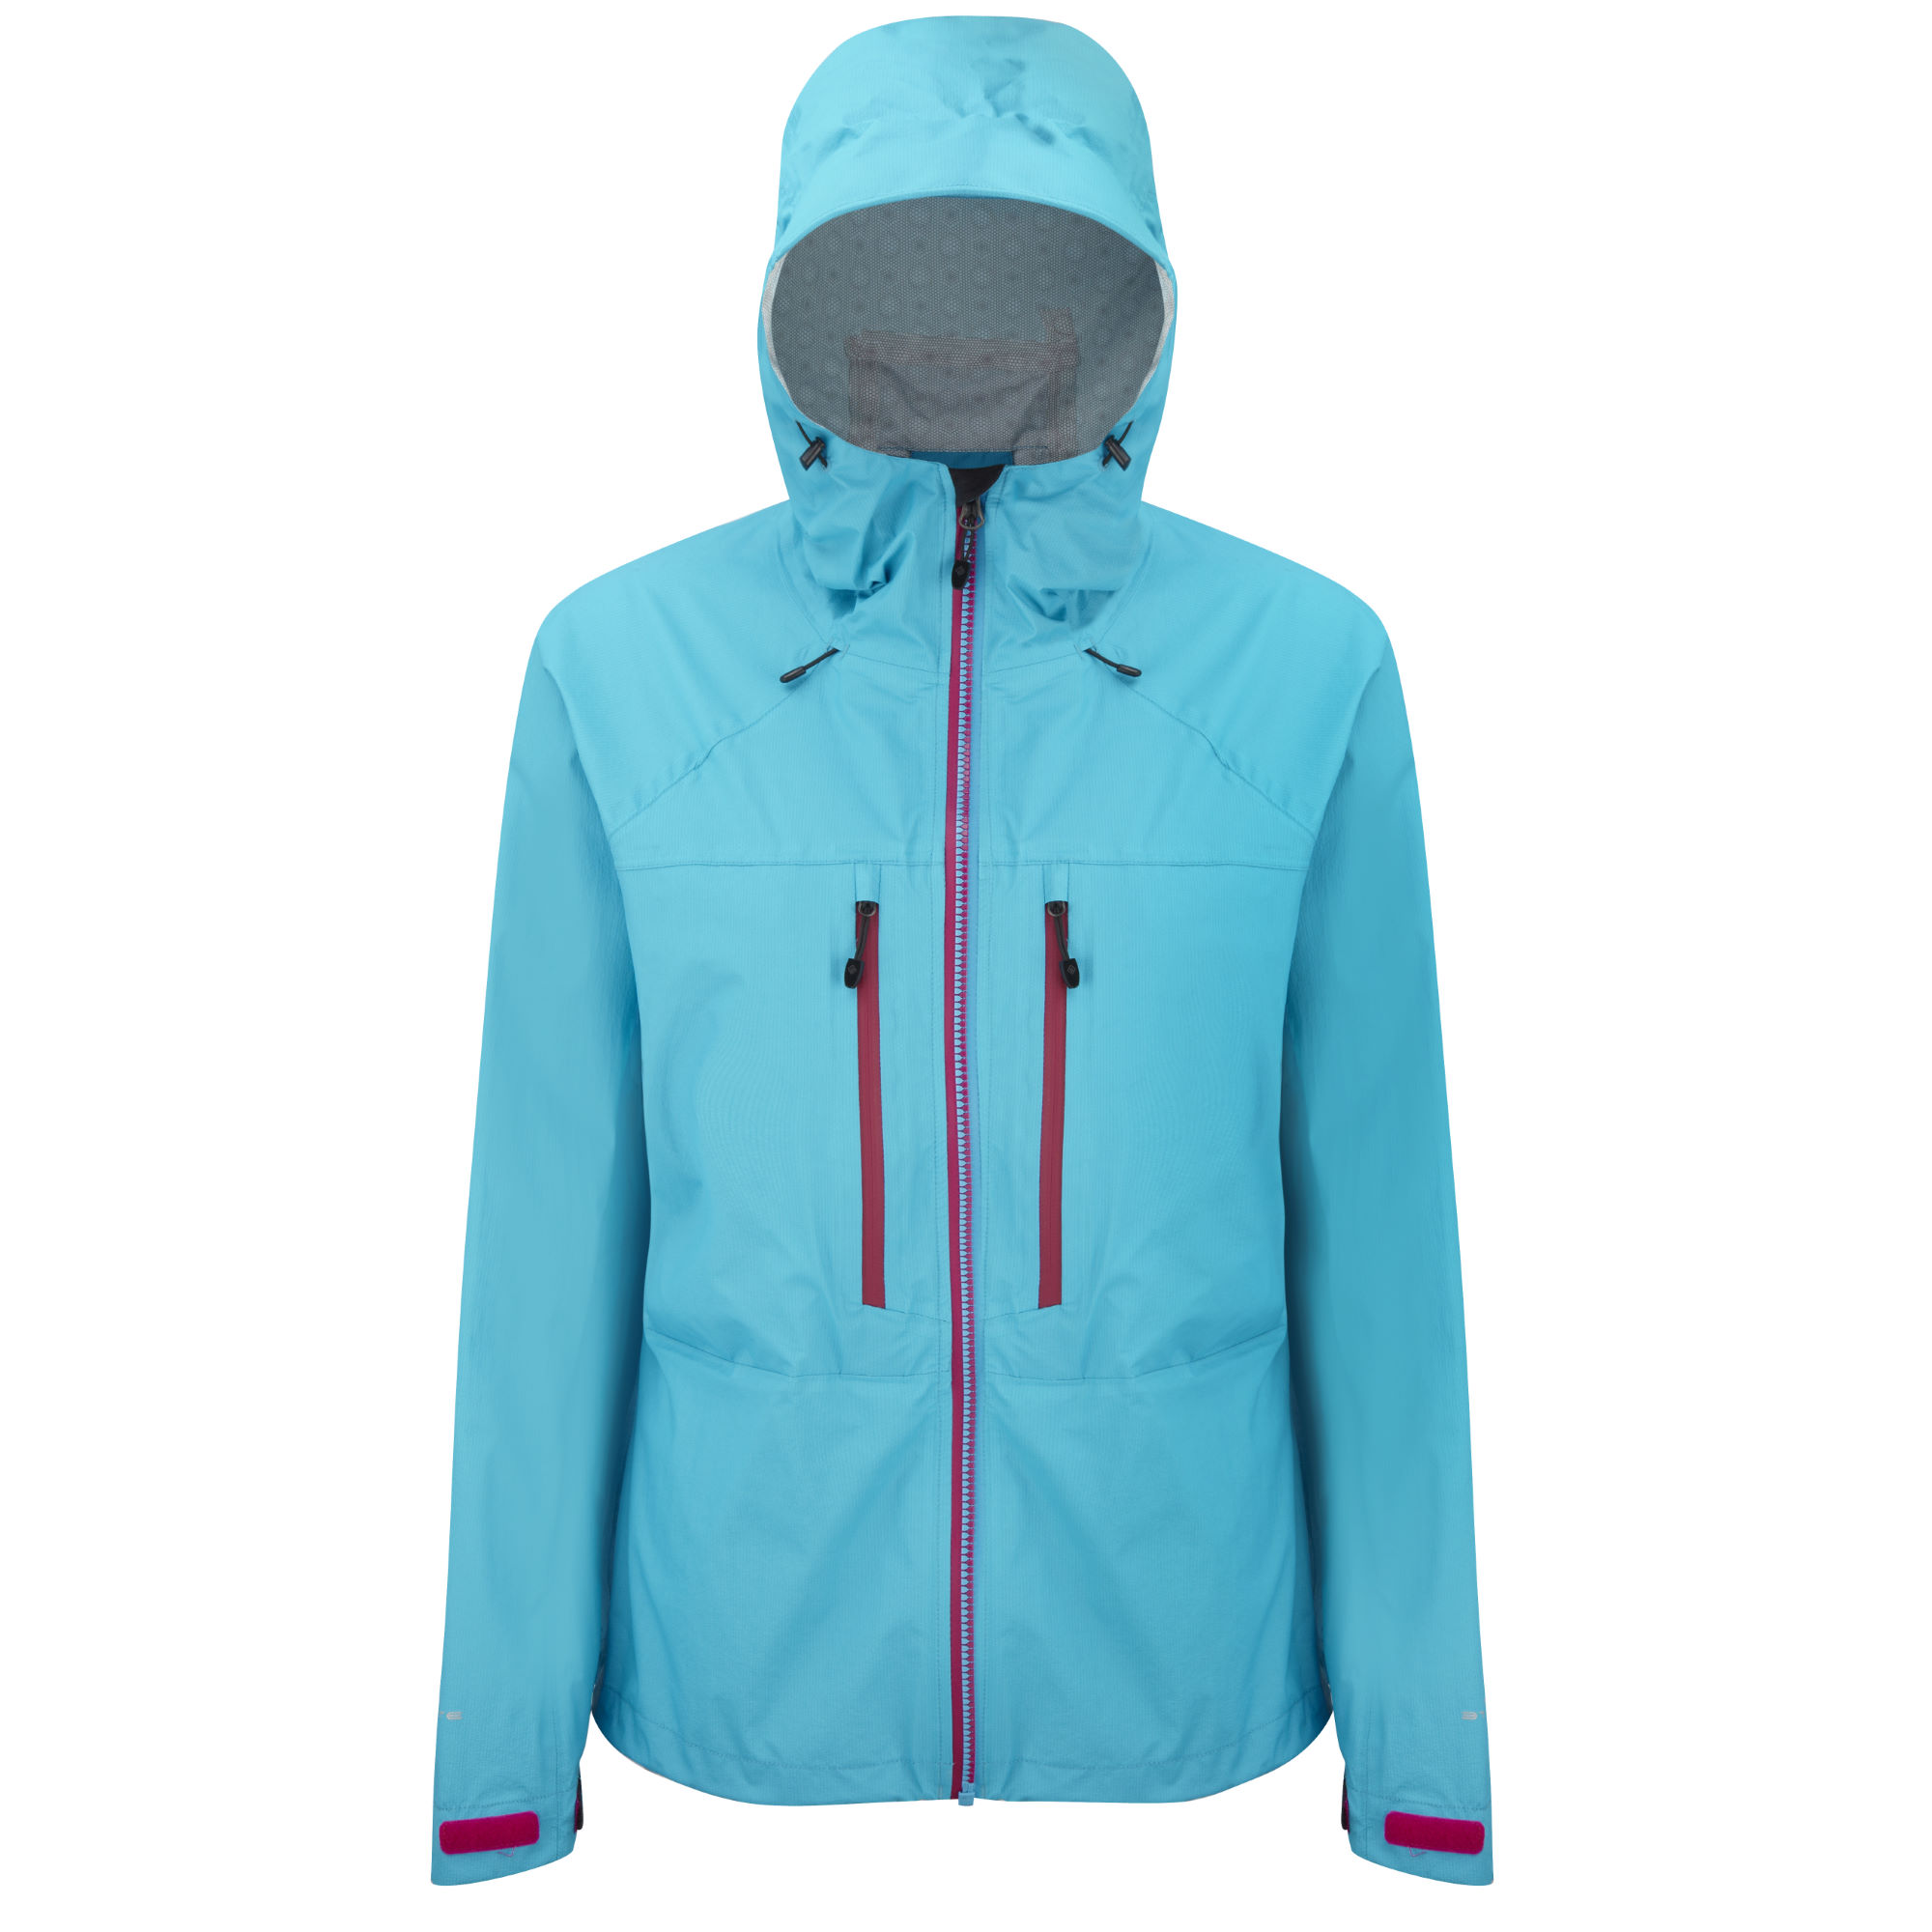 Wiggle | Ronhill Women&39s Trail Tempest Jacket - SS14 | Running